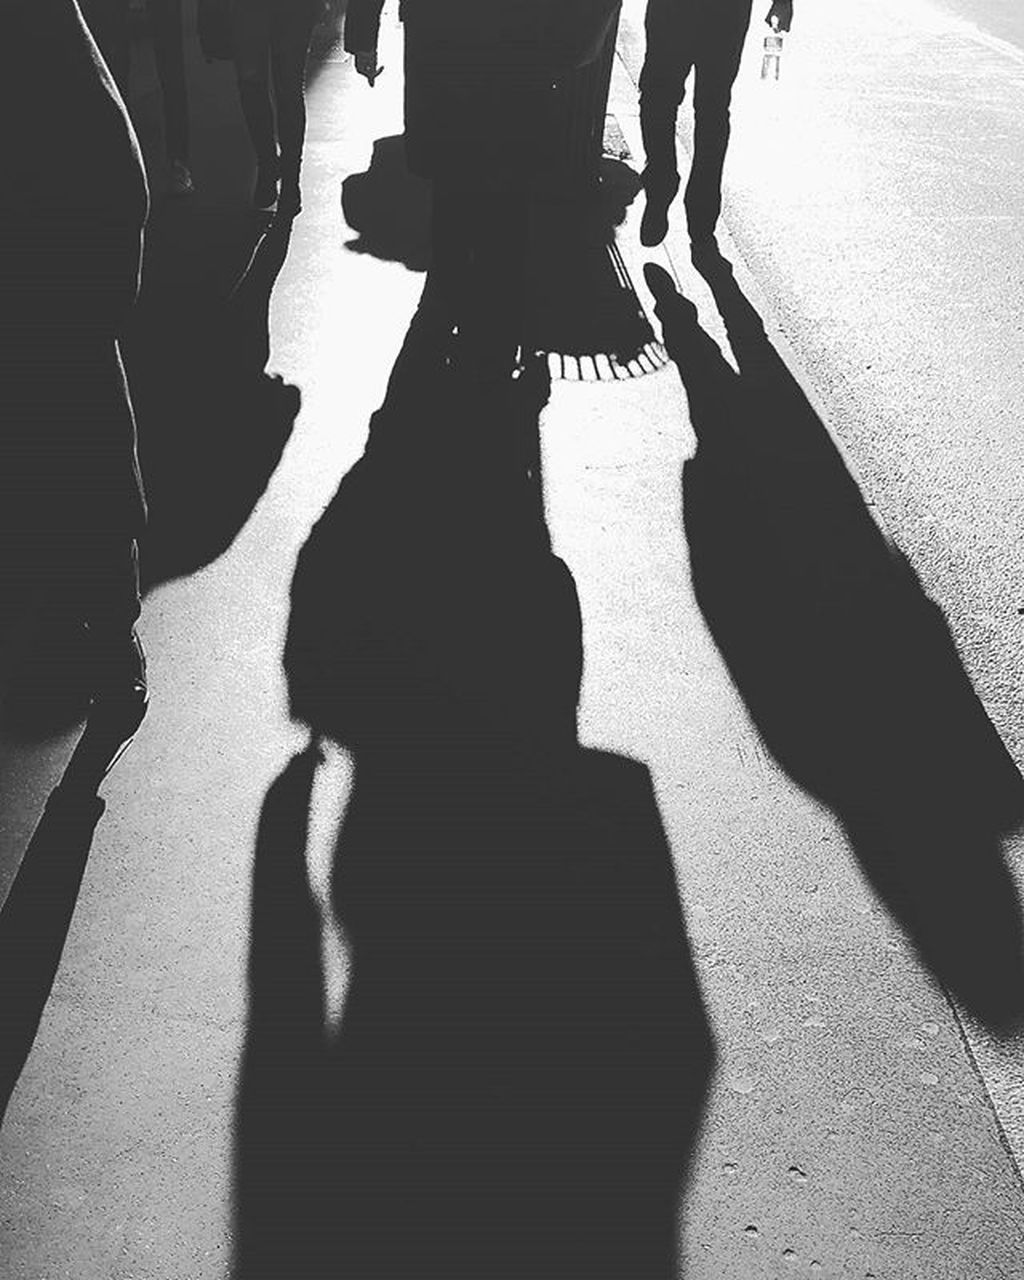 shadow, sunlight, real people, focus on shadow, day, silhouette, women, men, togetherness, low section, lifestyles, outdoors, adult, people